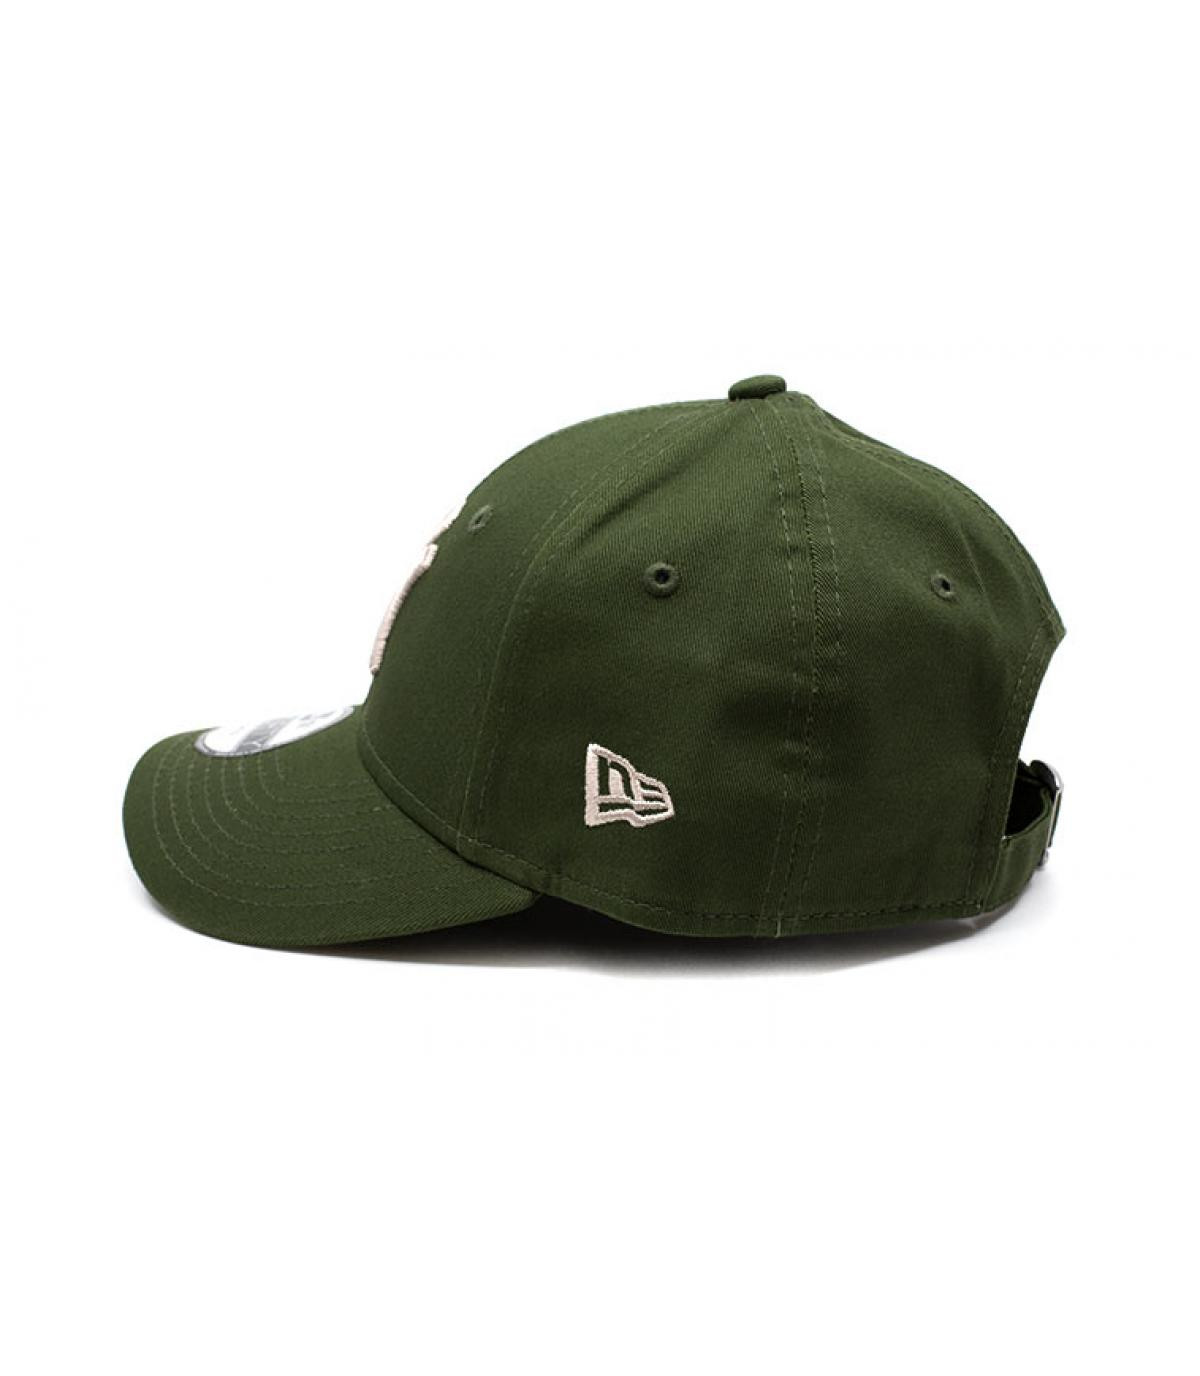 Détails CasquetteLeague Ess 9Forty NY rifle green stone - image 4